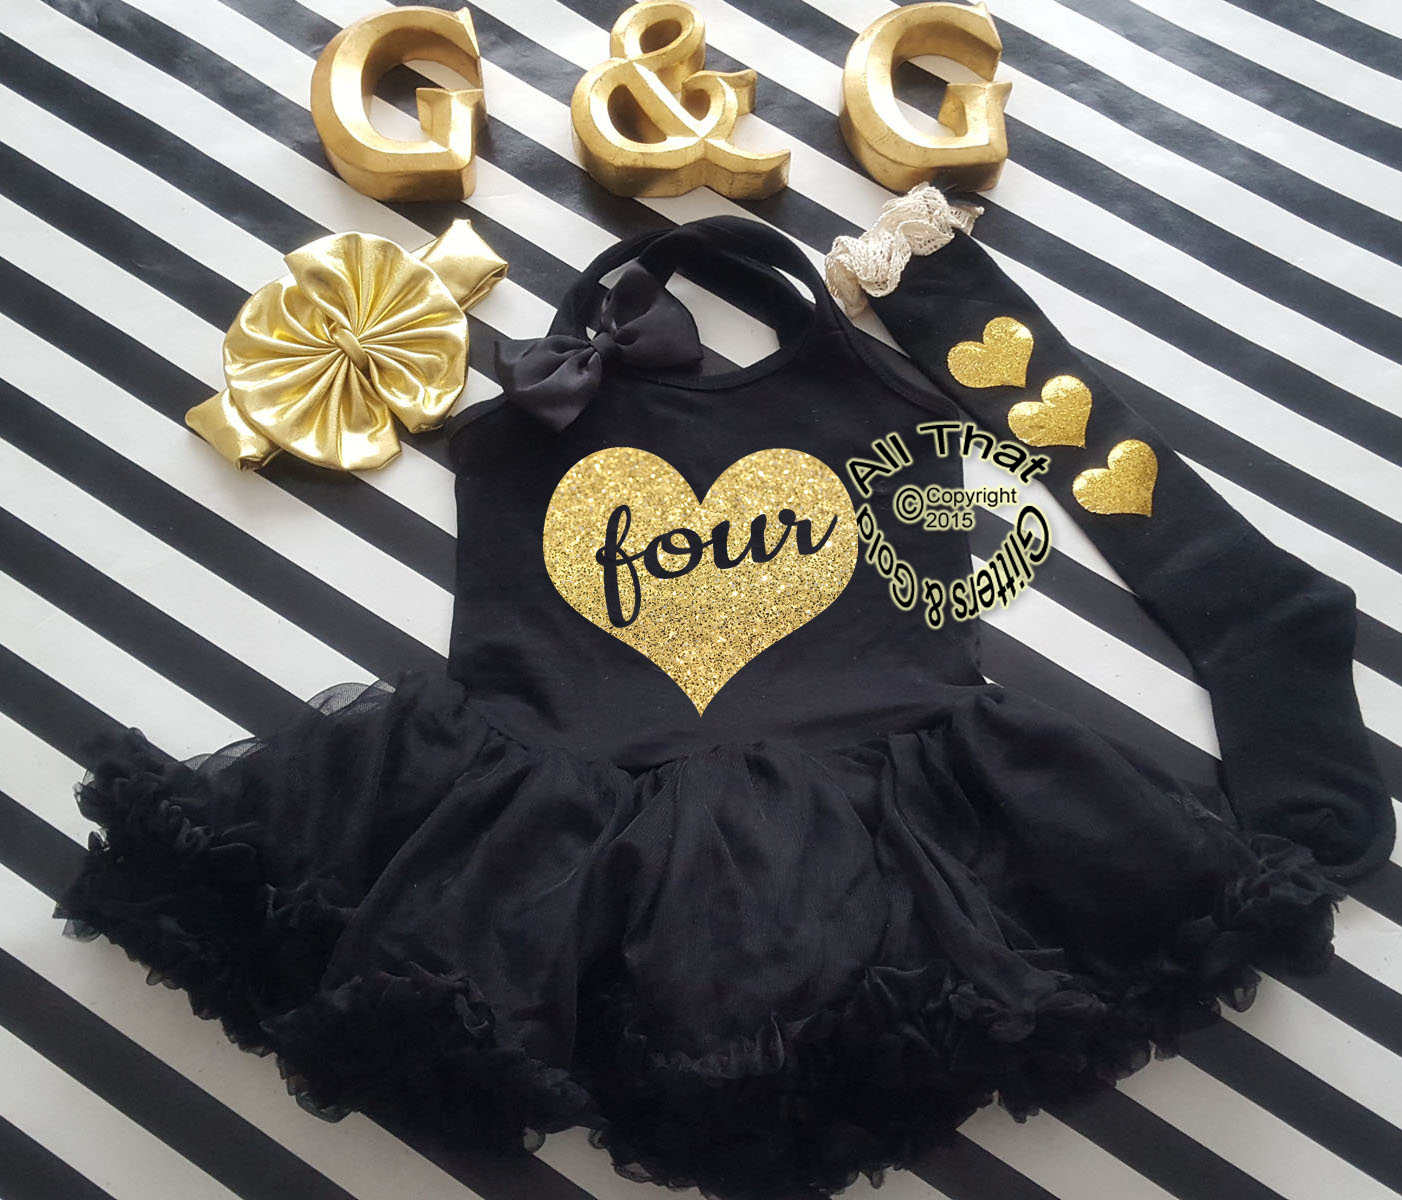 Glitter and Sparkly Gold Heart Birthday Tutu Dresses For Baby Girls